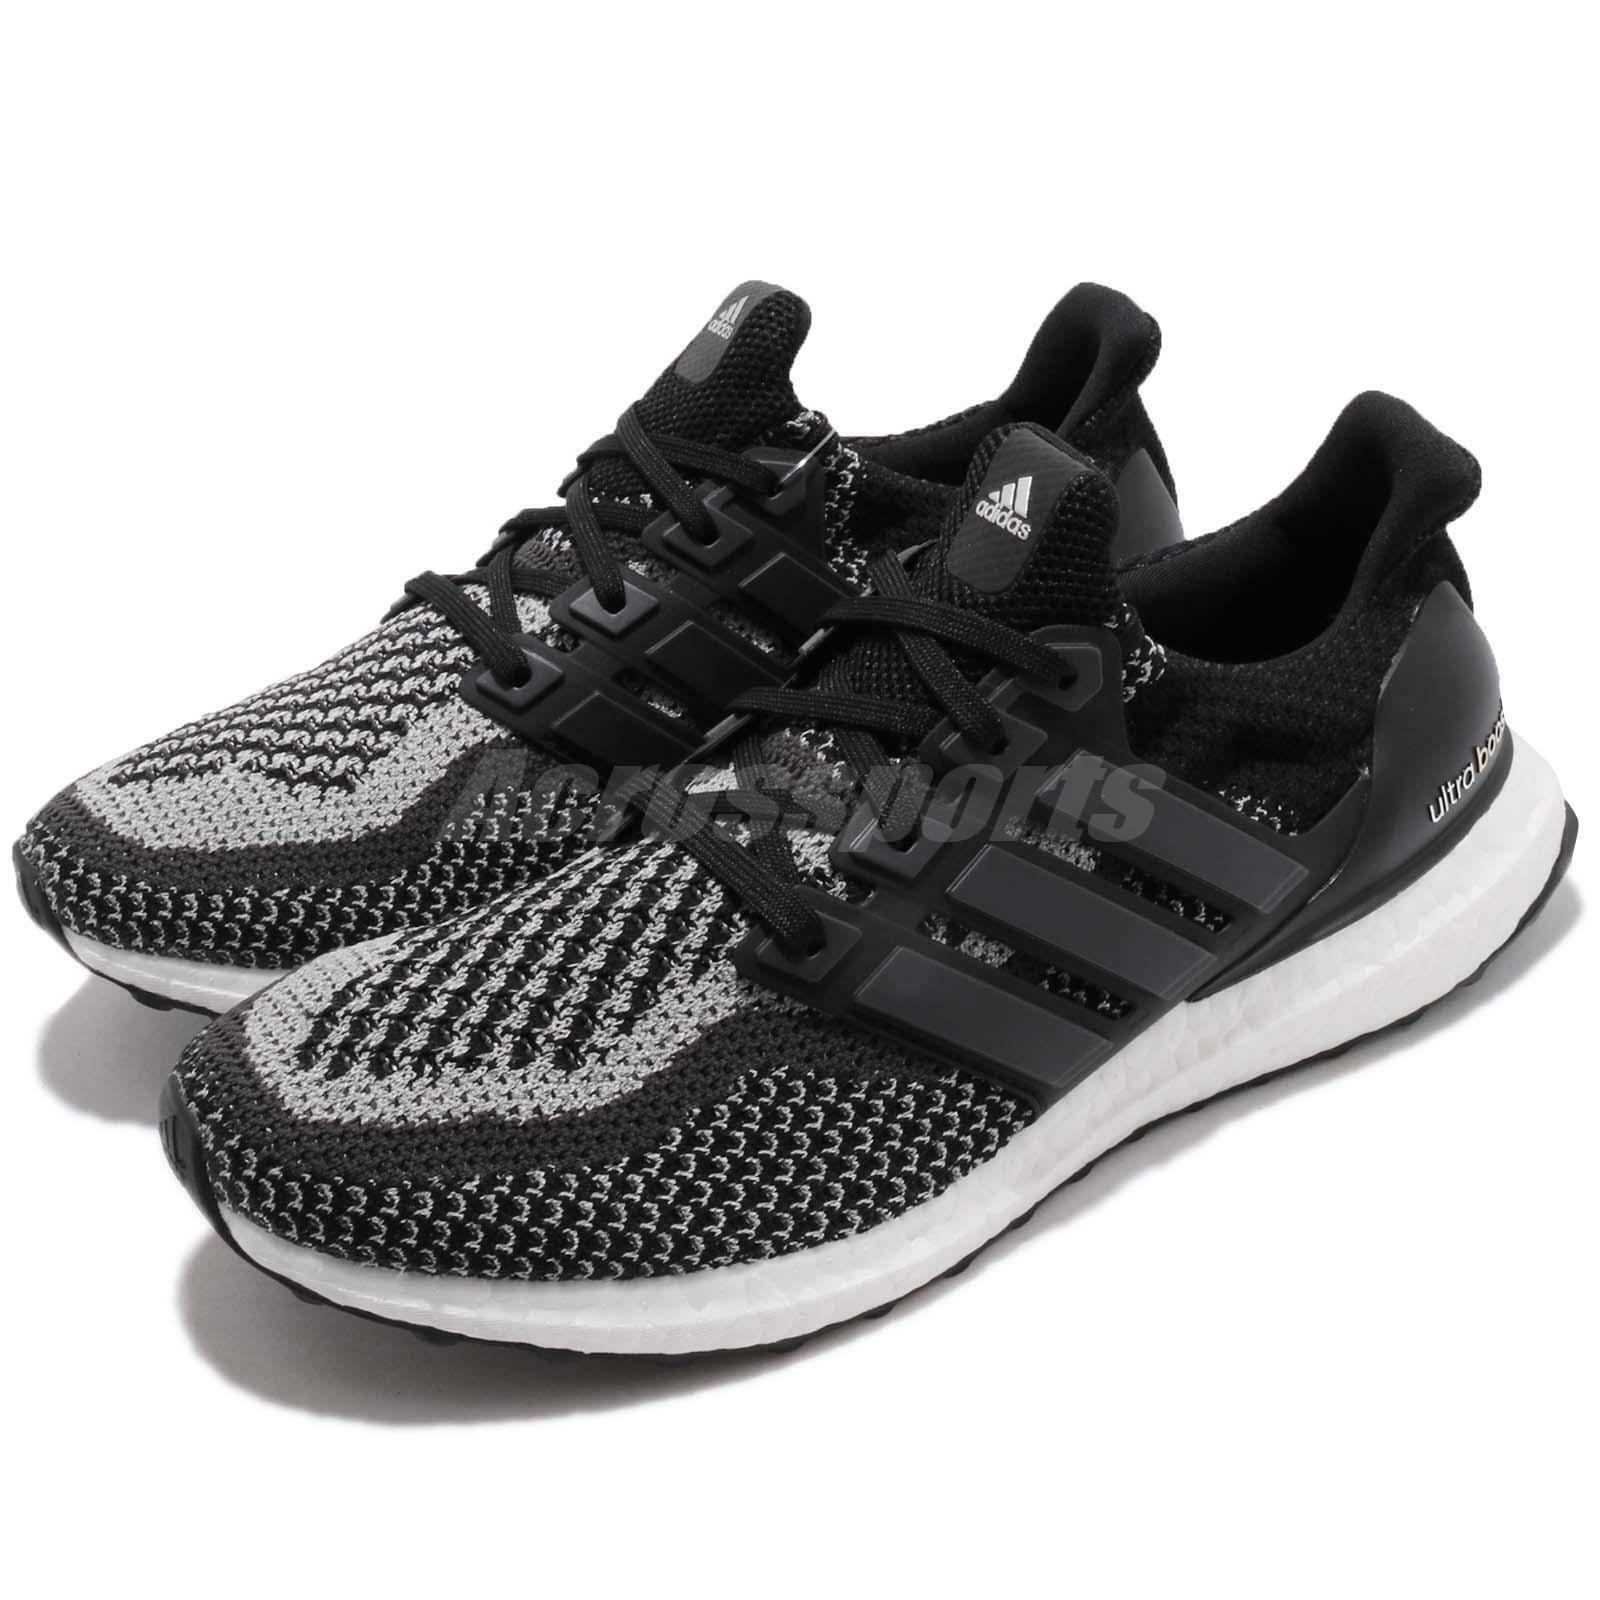 Adidas UltraBOOST LTD 2.0 Limited nero Reflective Men Running scarpe BY1795